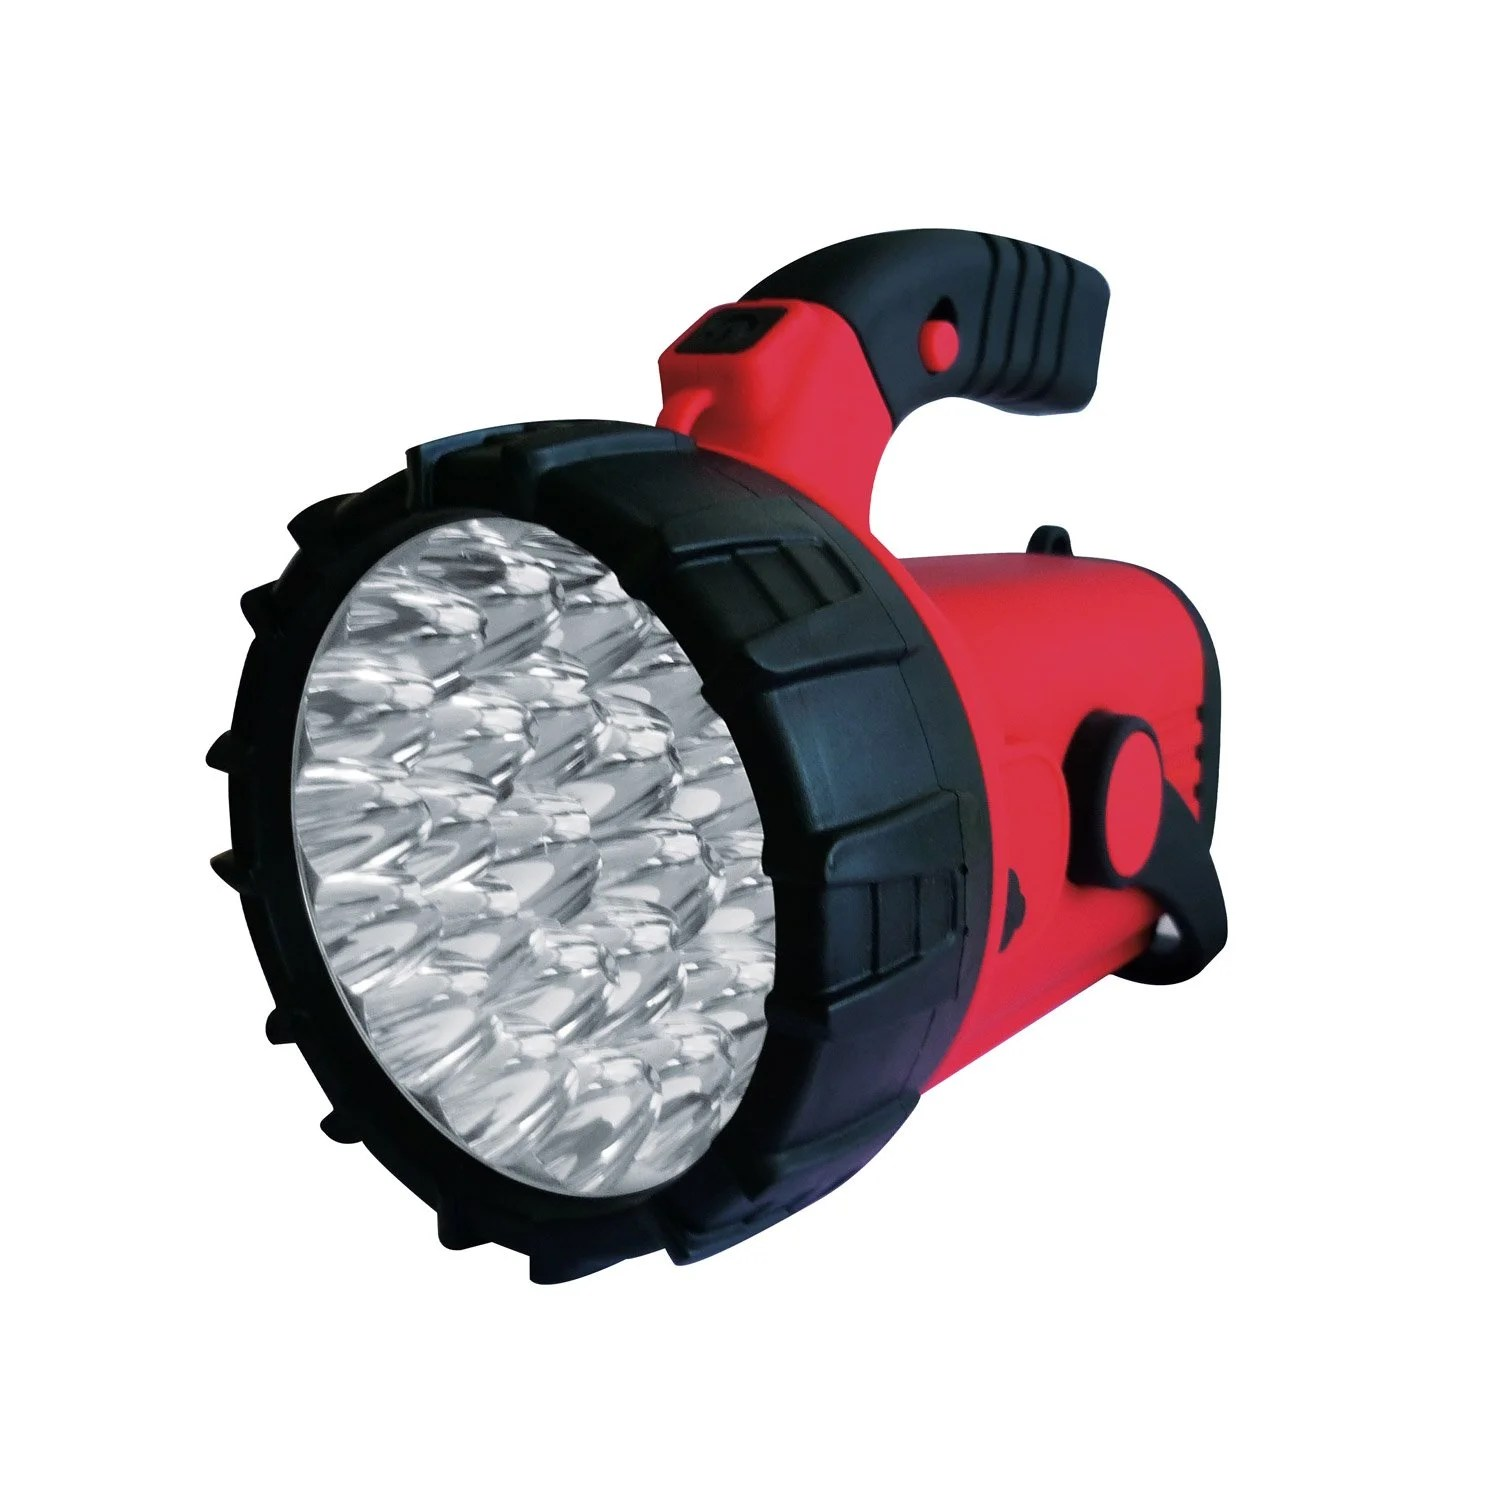 Lampe De Salon Leroy Merlin Led R7s Leroy Merlin Trendy Projecteur Led Exterieur Leroy Merlin